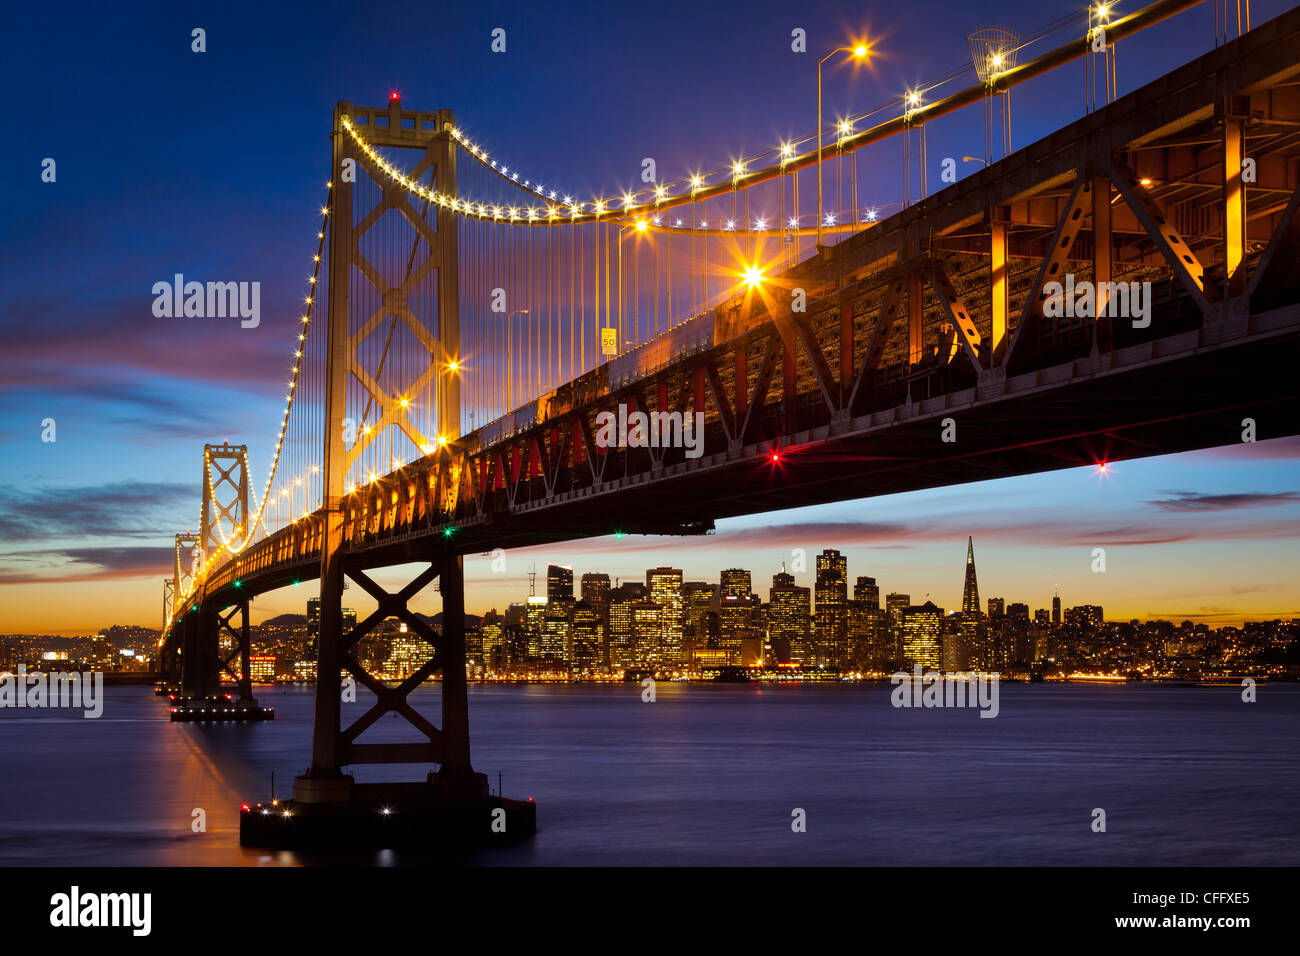 The San Francisco – Oakland Bay Bridge (known locally as the Bay Bridge) - Stock Image